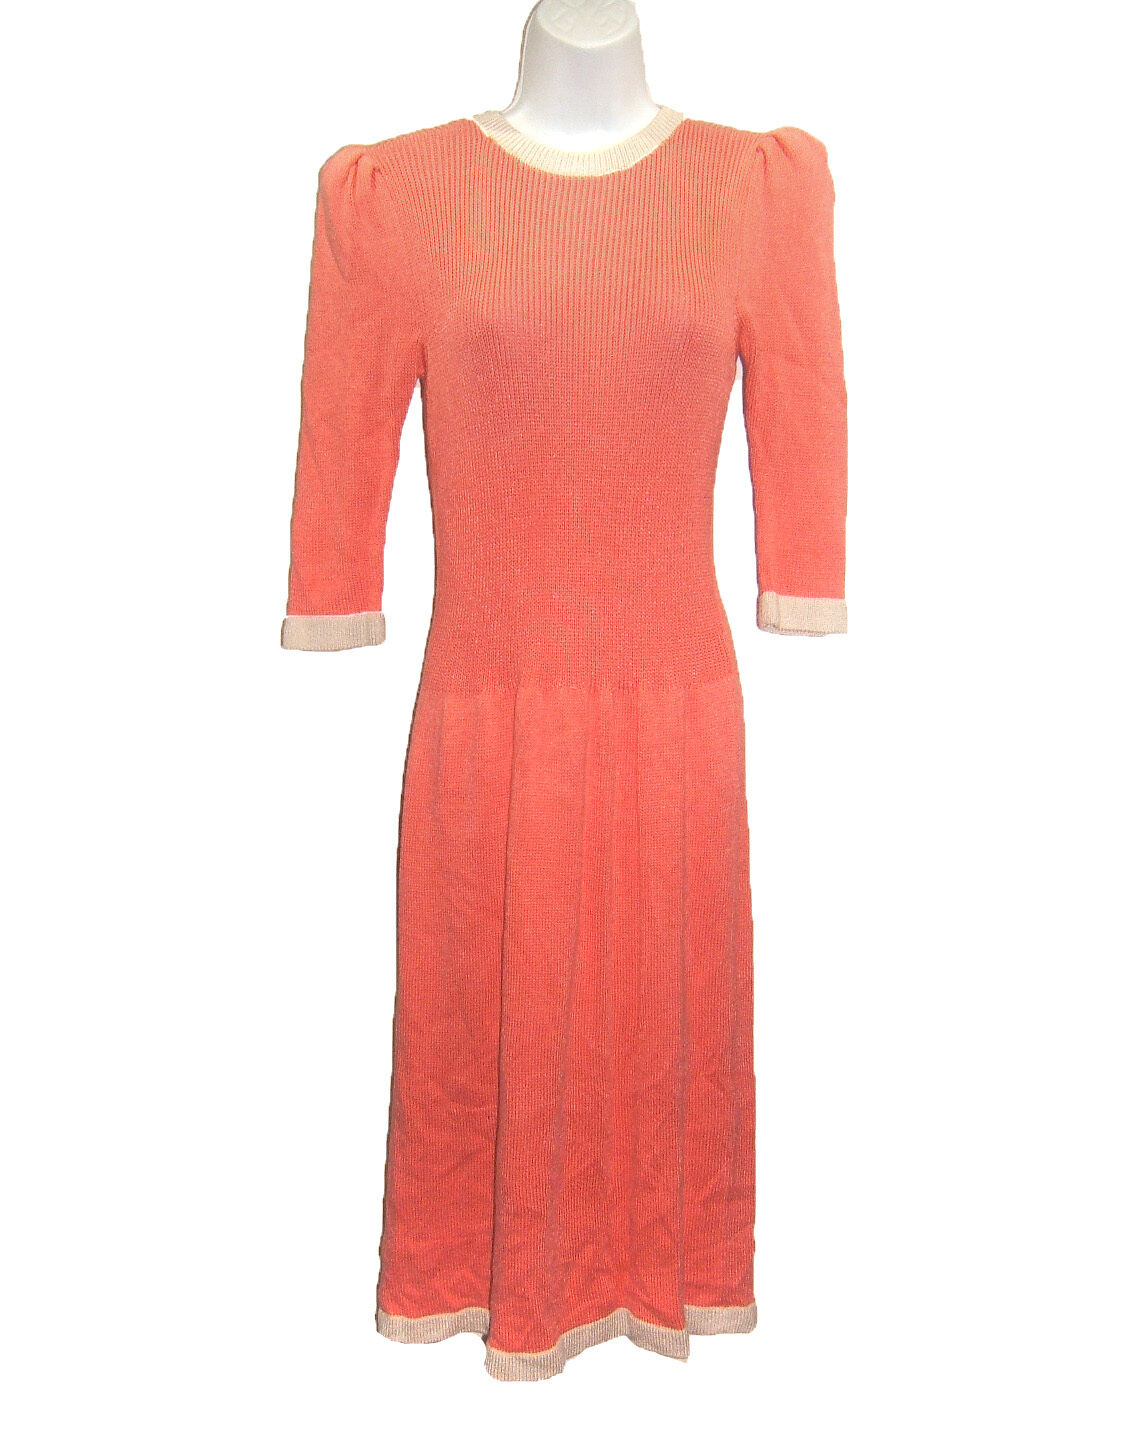 Wellmore Living Coral Santana Knit Dress sz 6 Beige Accents 3 4 Sleeves